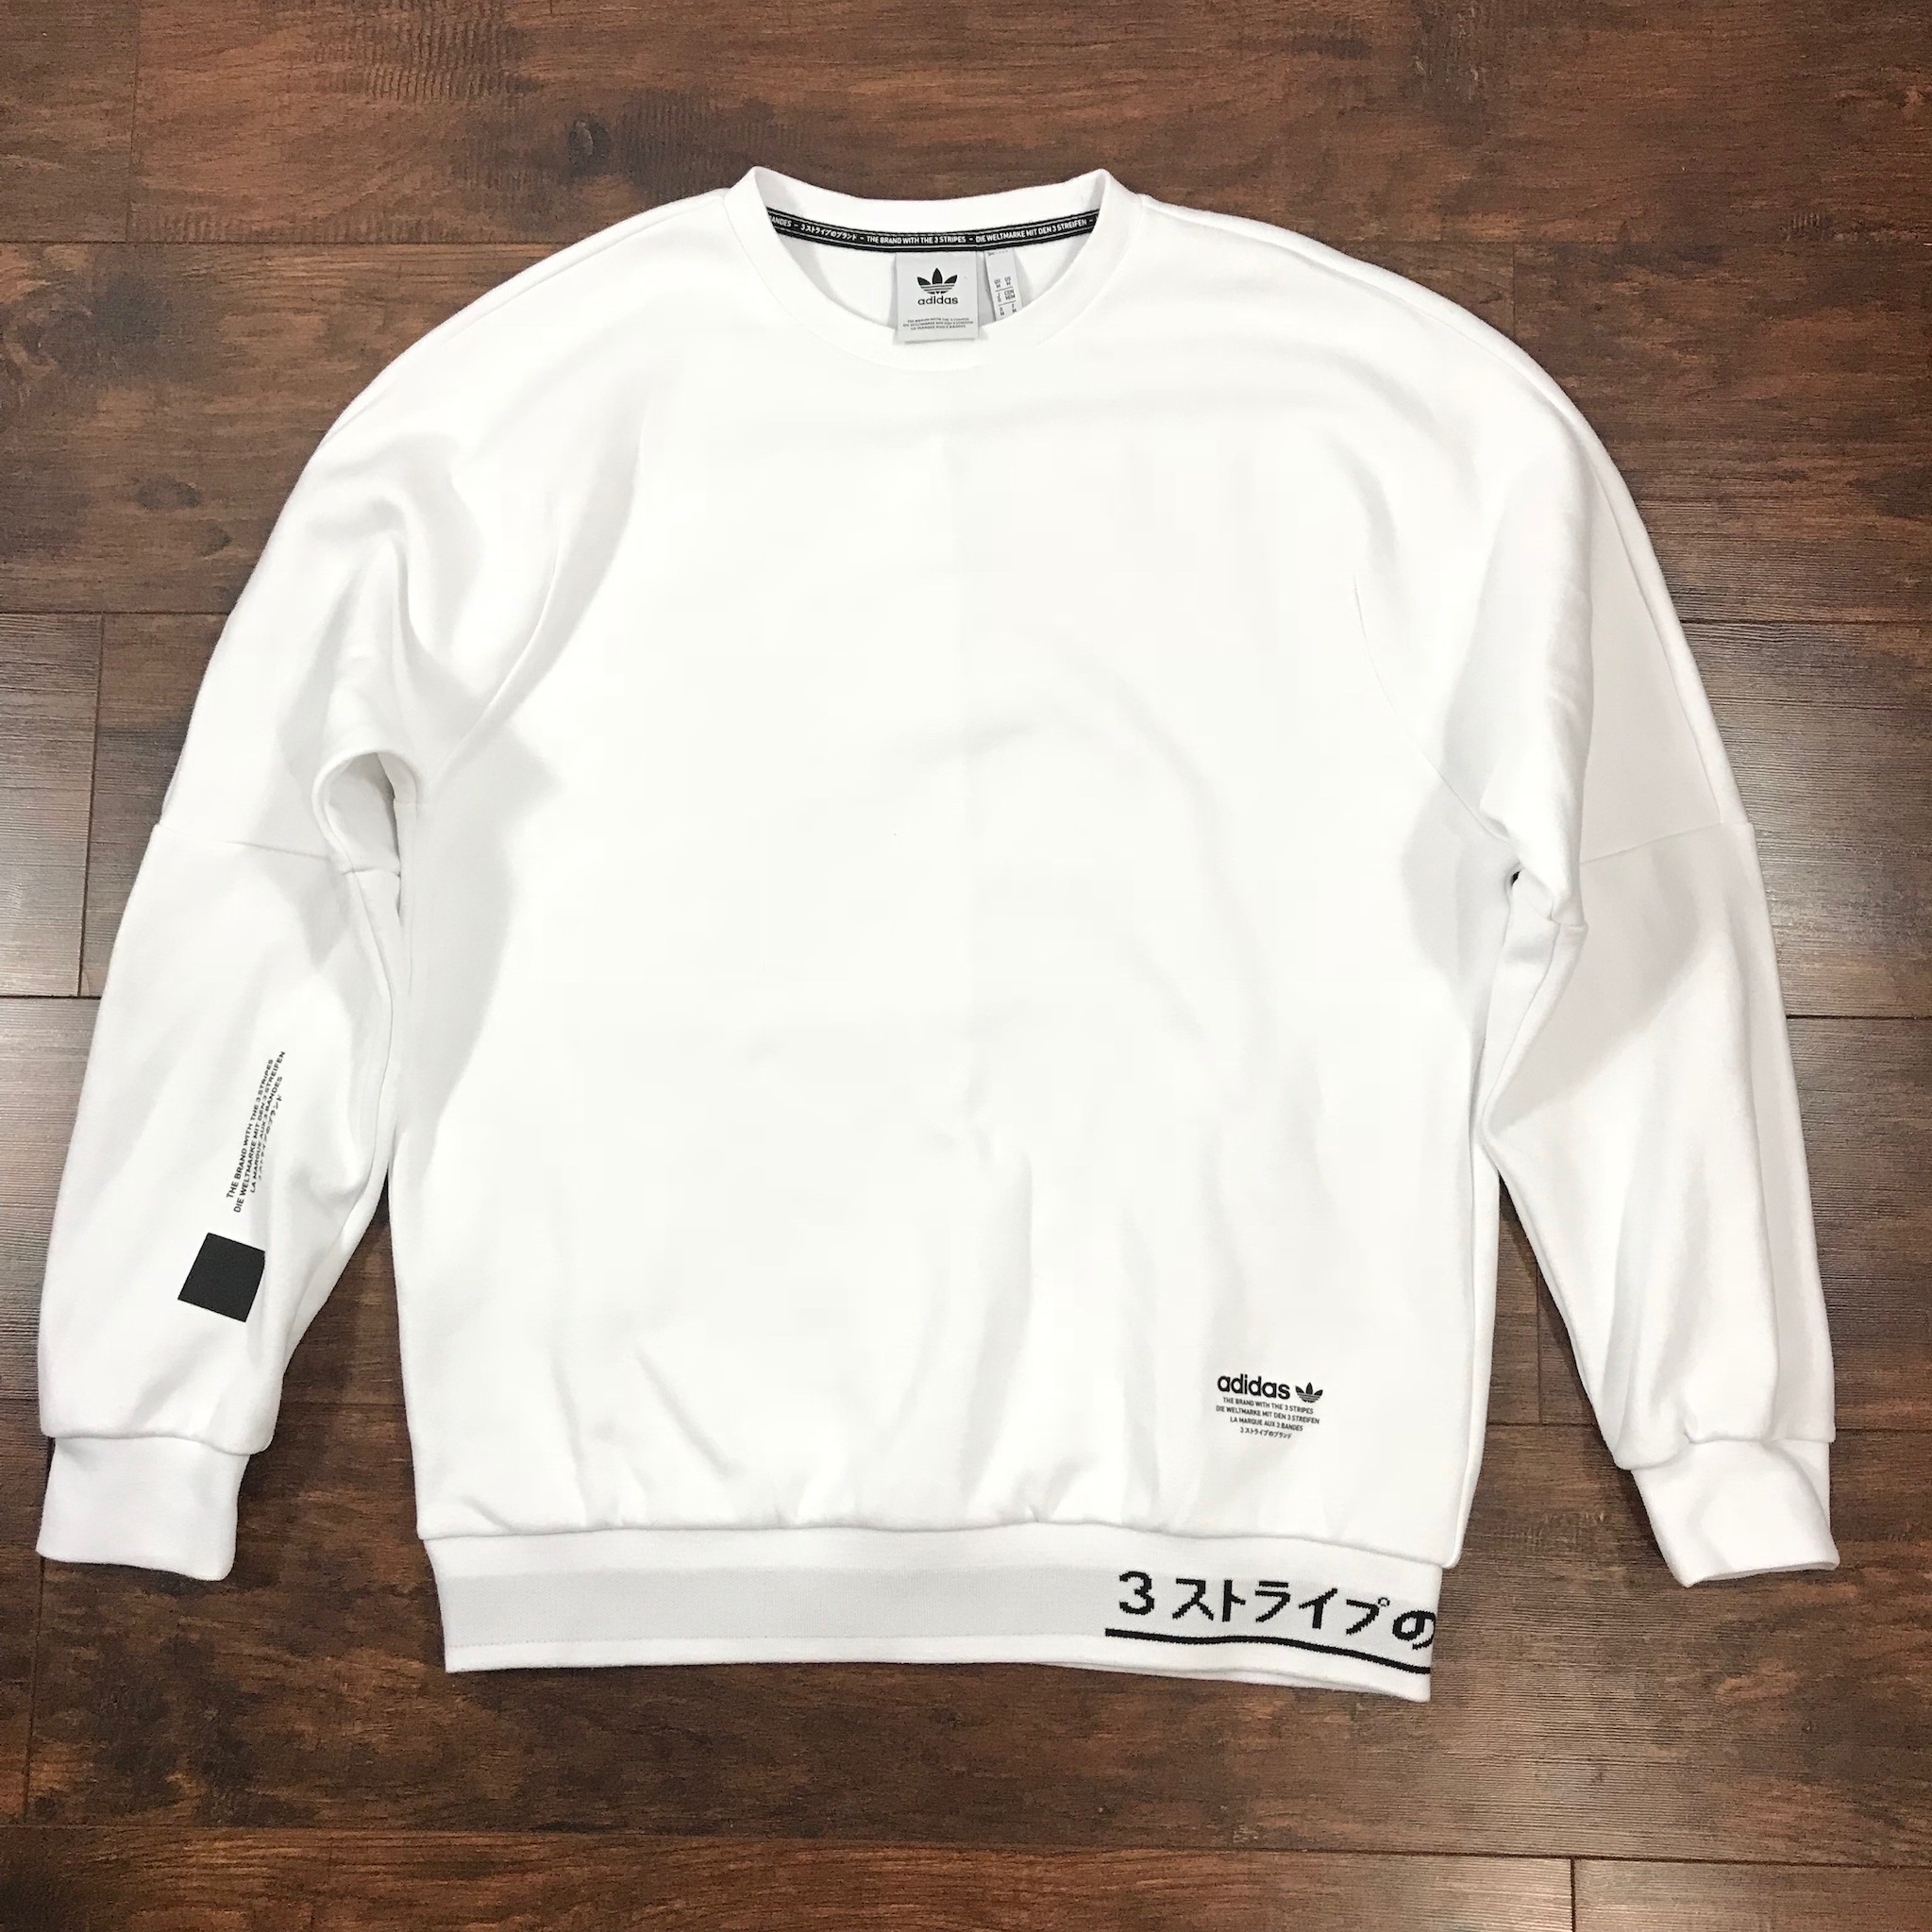 6fbf05f13 Adidas ×. Adidas Originals M657 Mens M White NMD Crew Neck Oversized  Sweatshirt Japanese